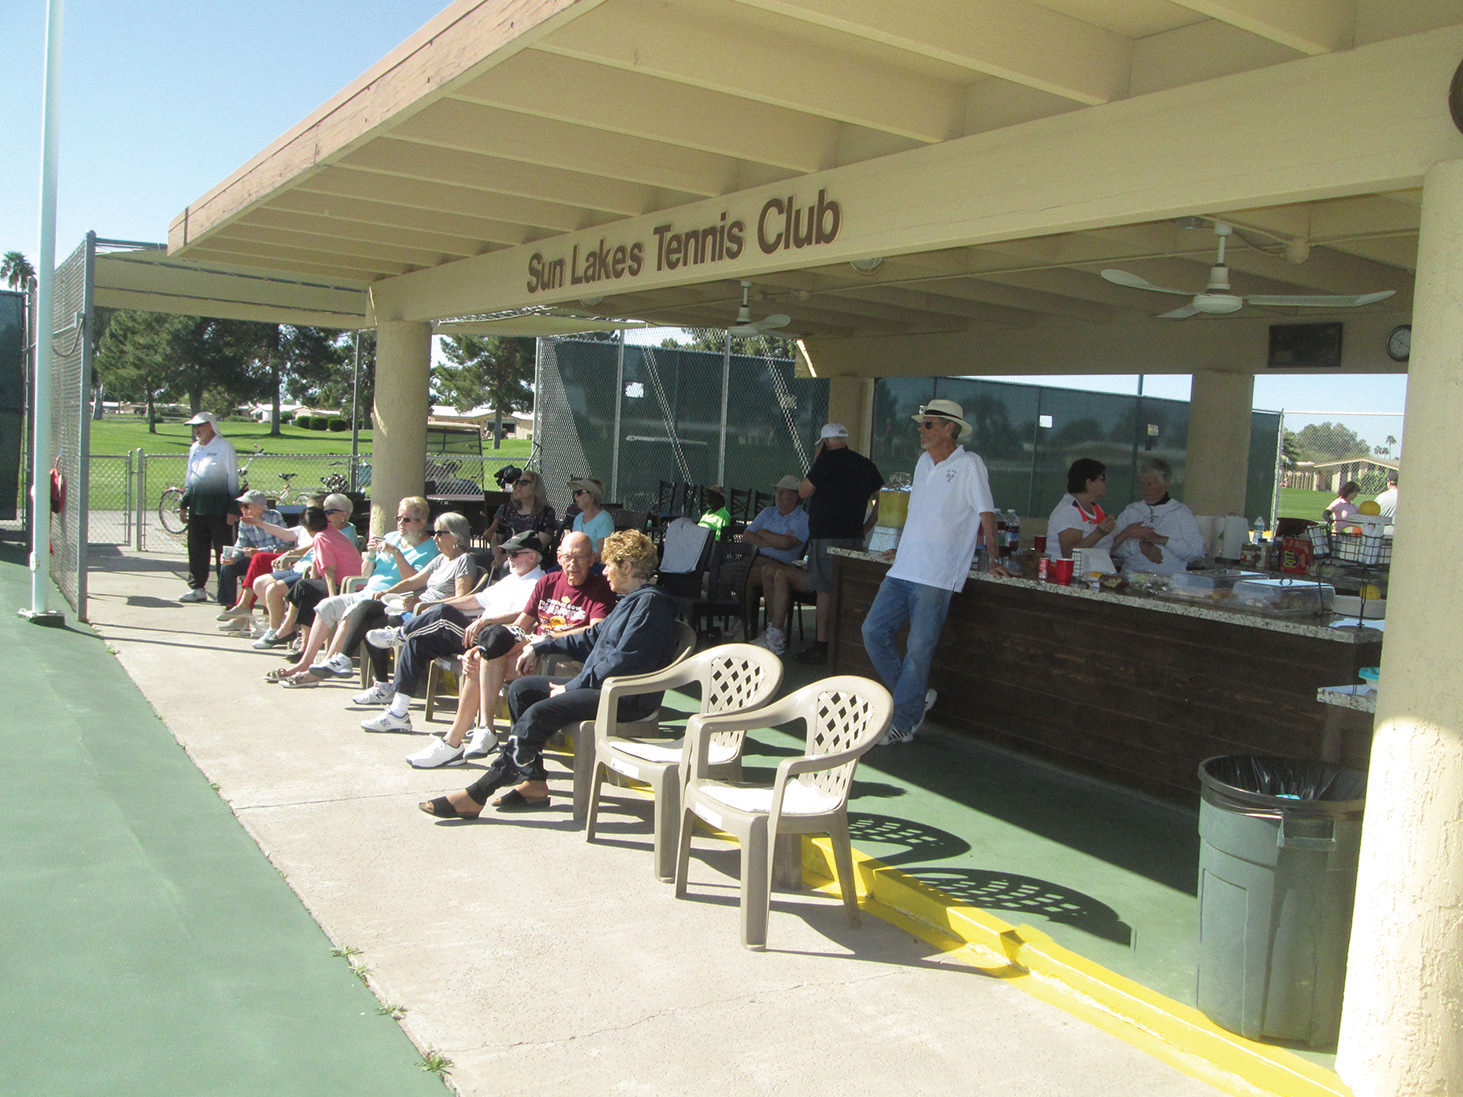 The Tennis Club meeting in March of 2020 before closures